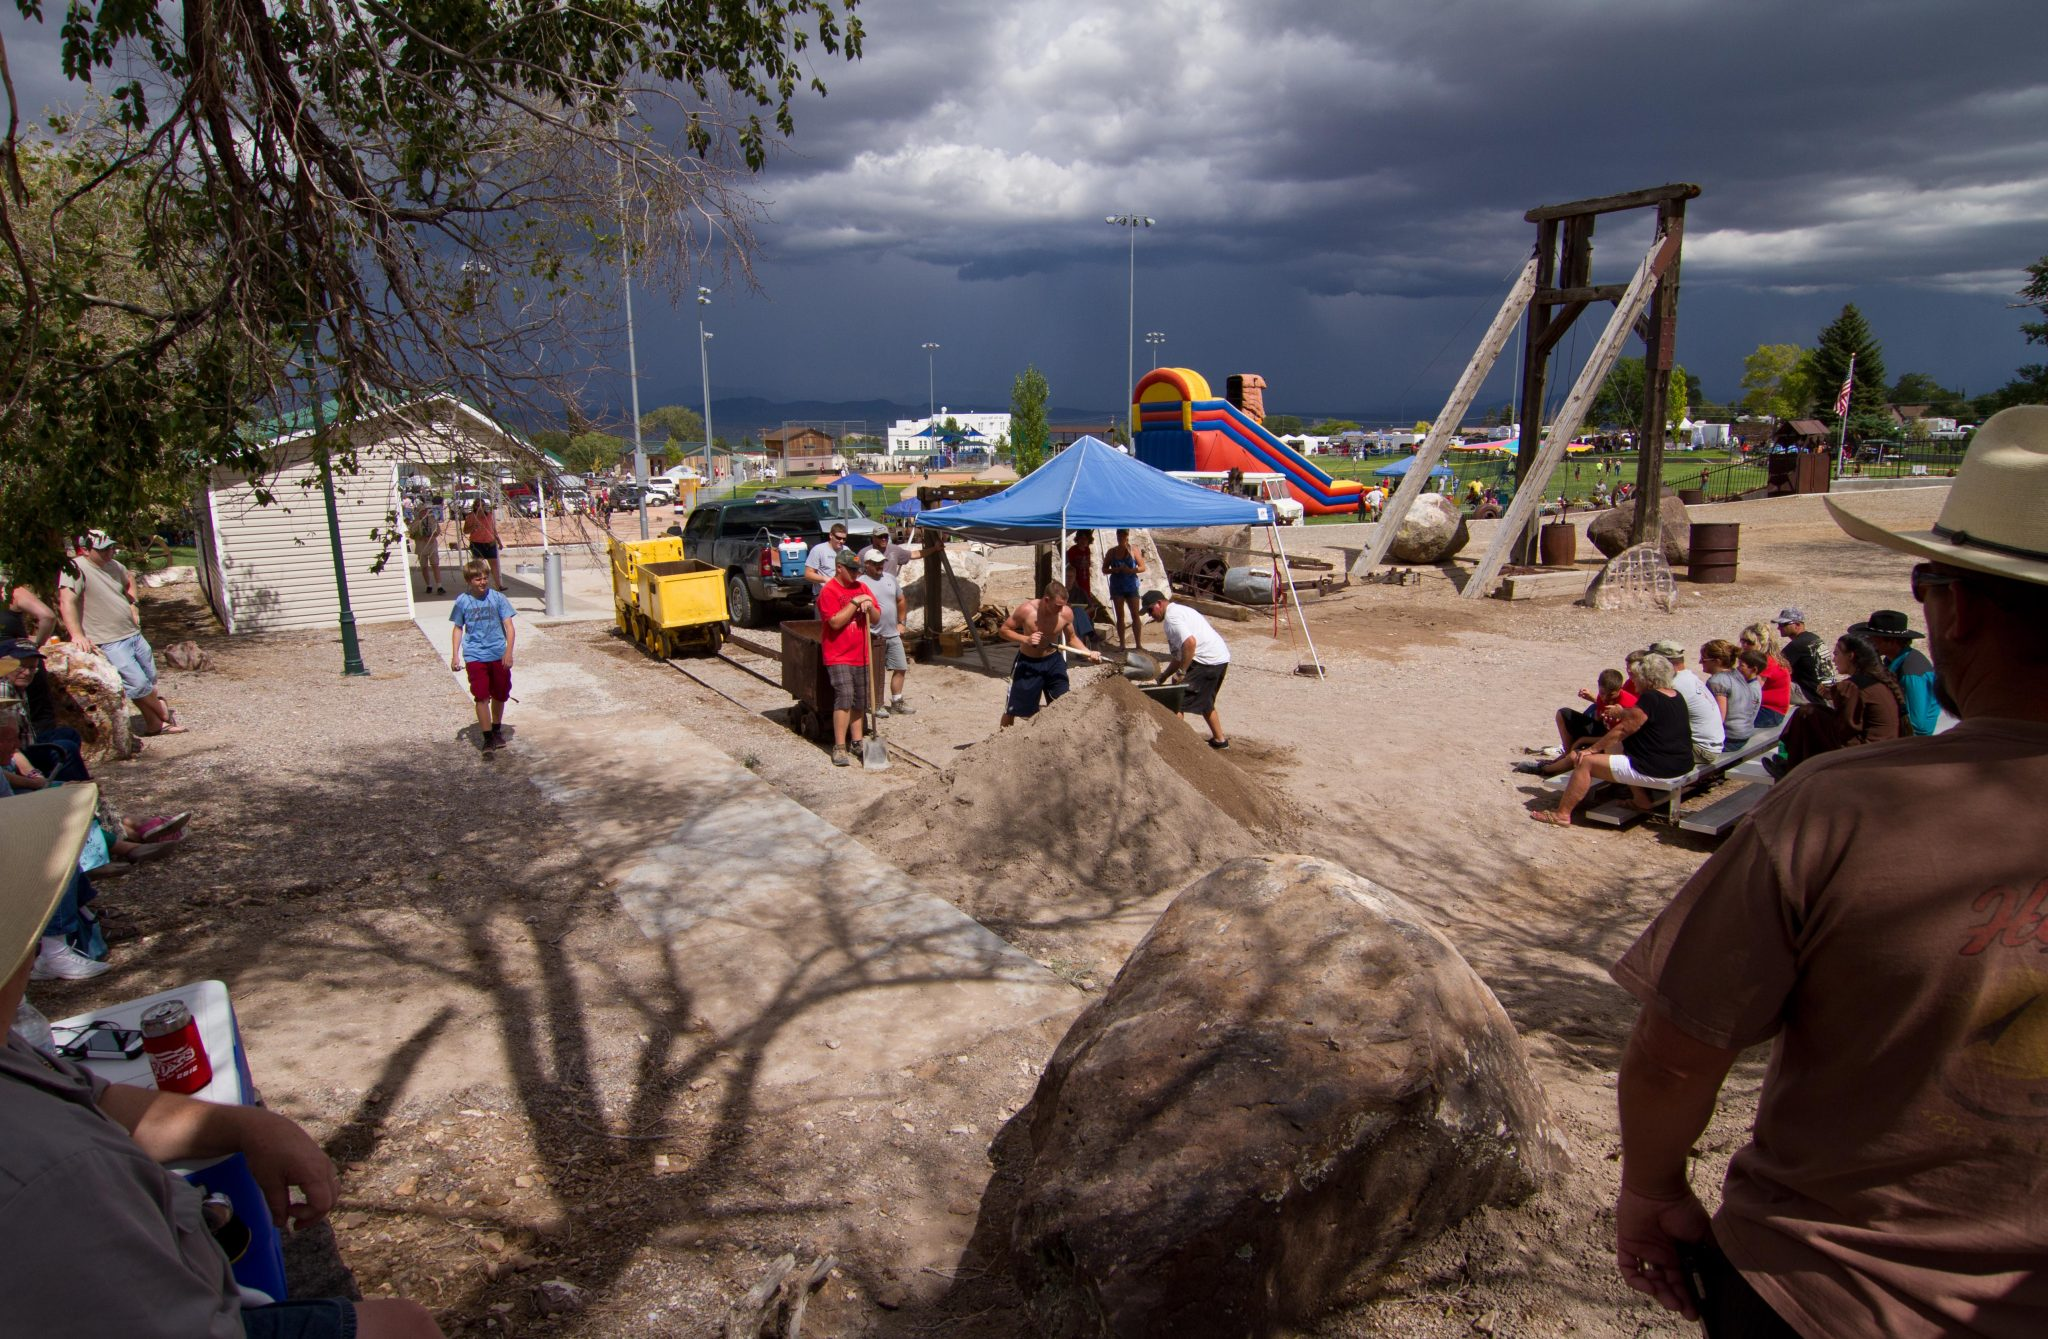 Pioche celebrates Labor Day in the rain